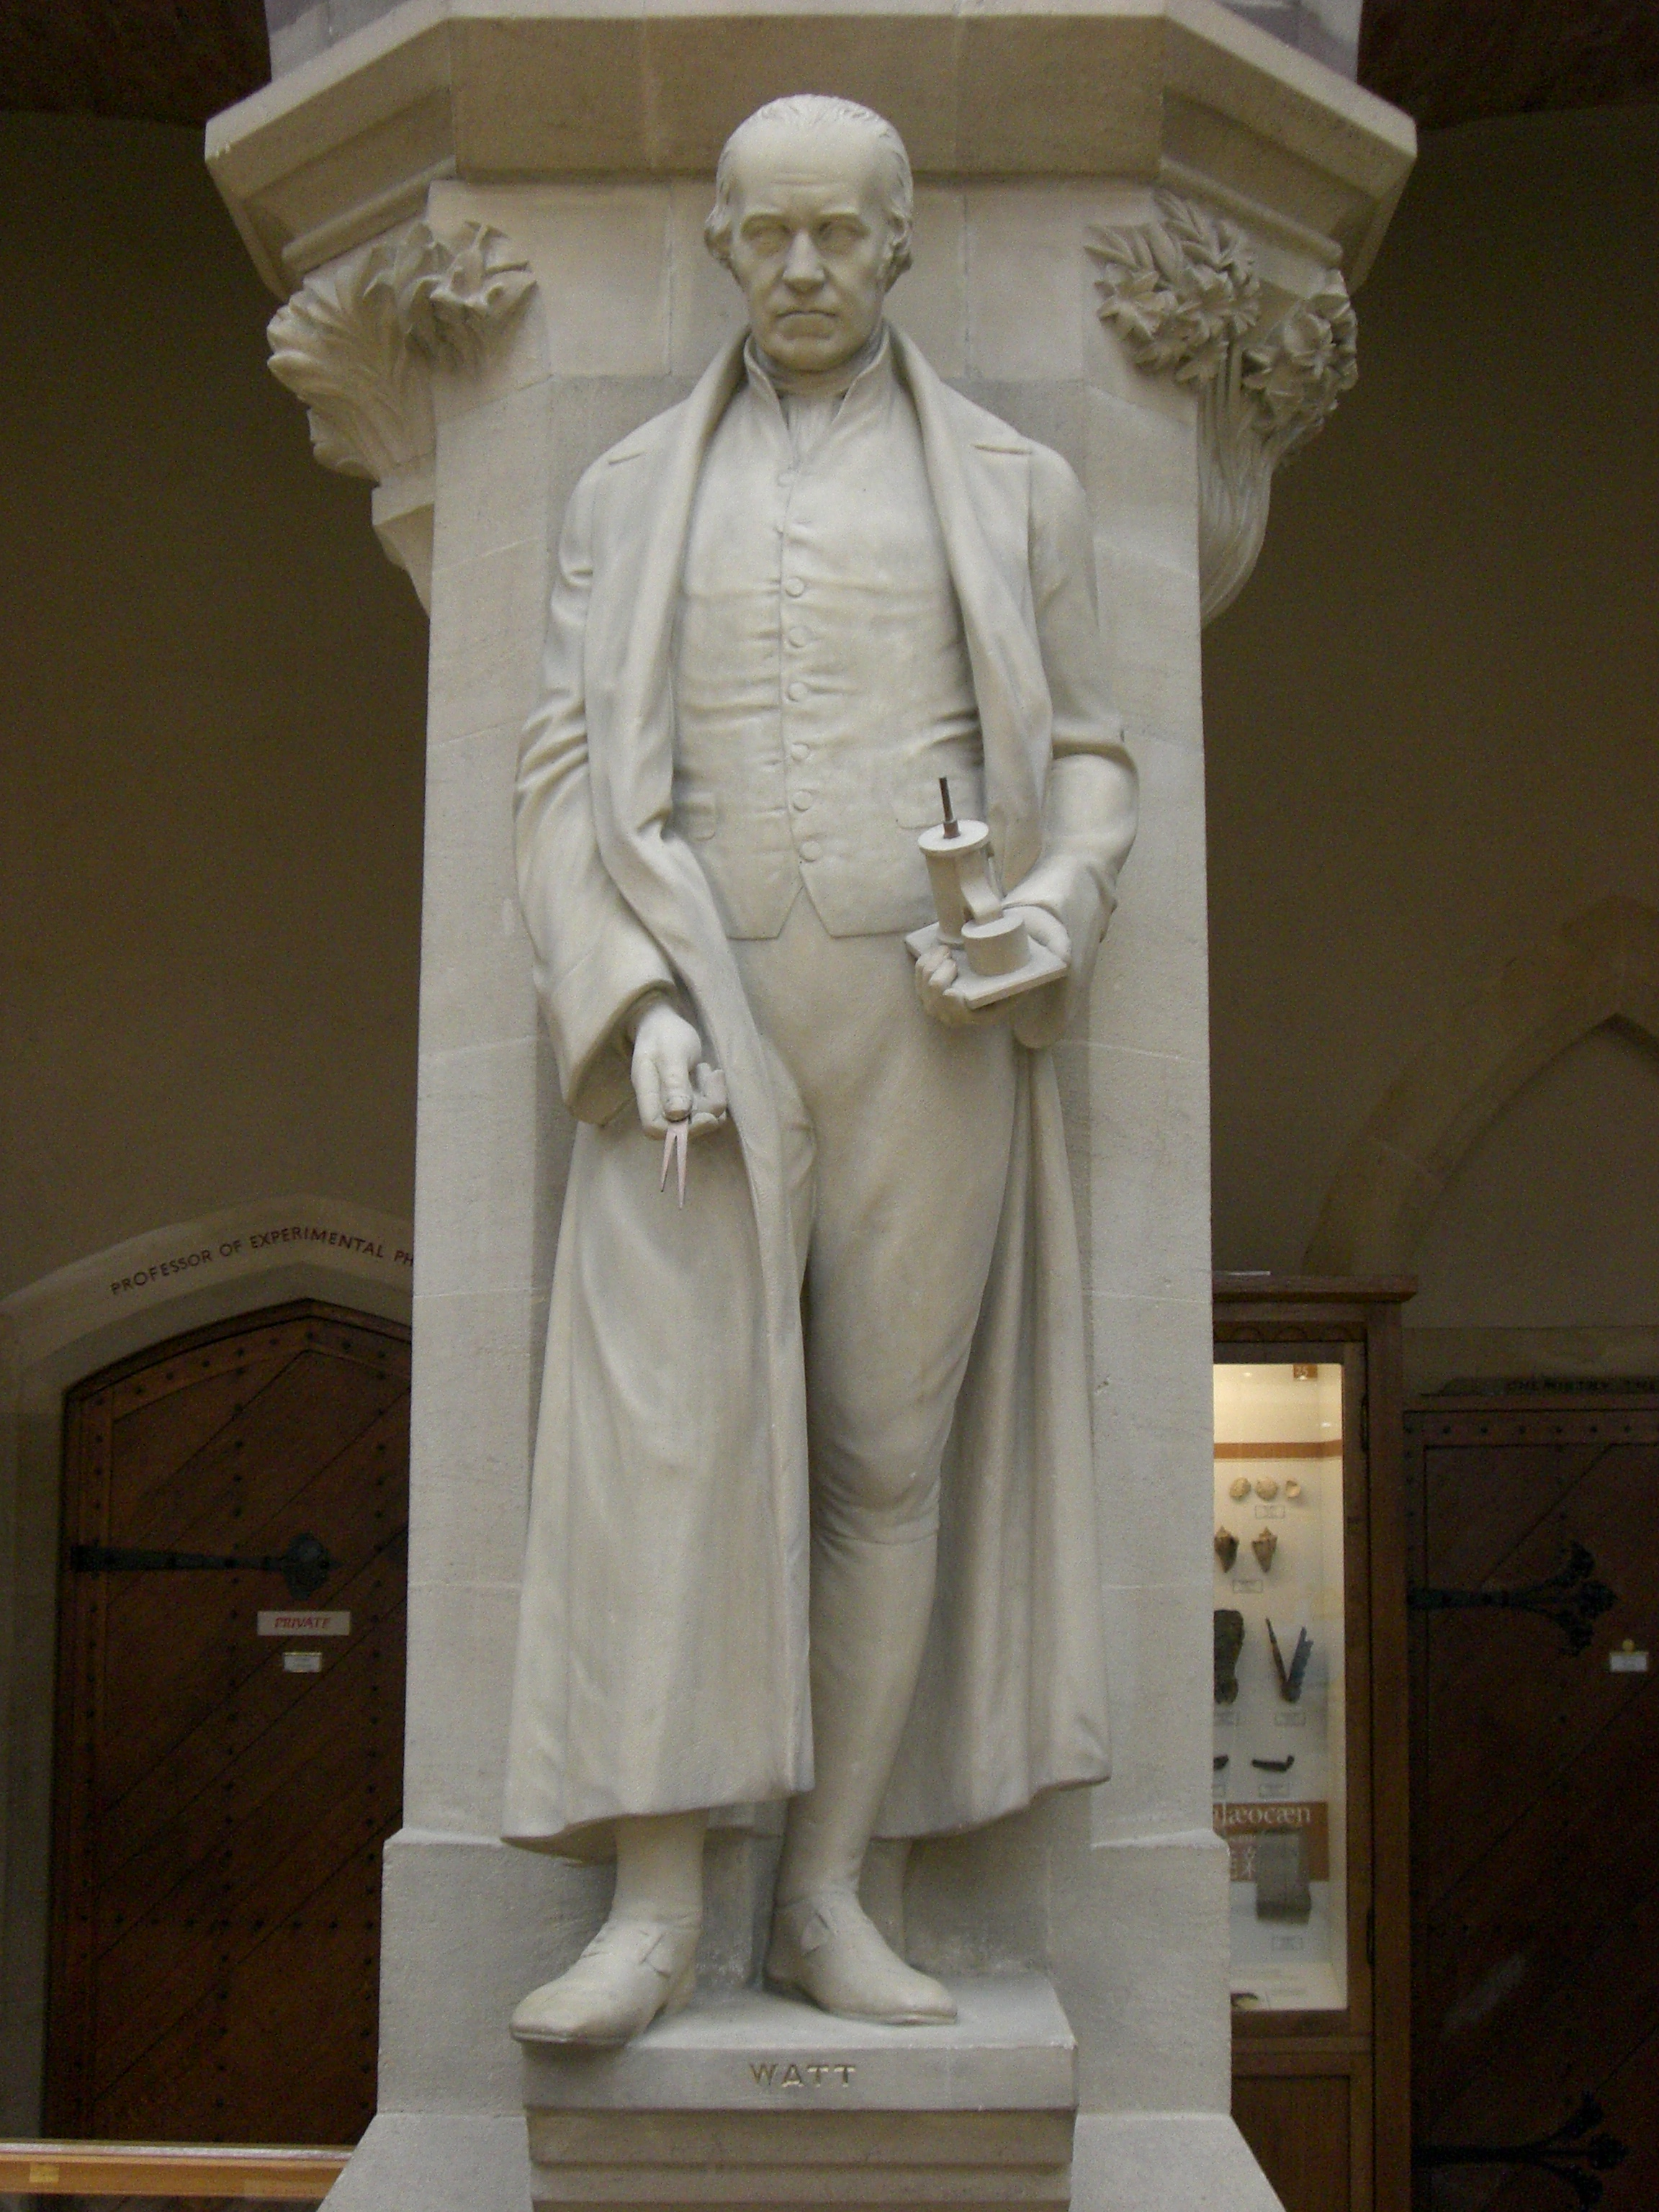 File:James Watt statue.jpg - Wikimedia Commons